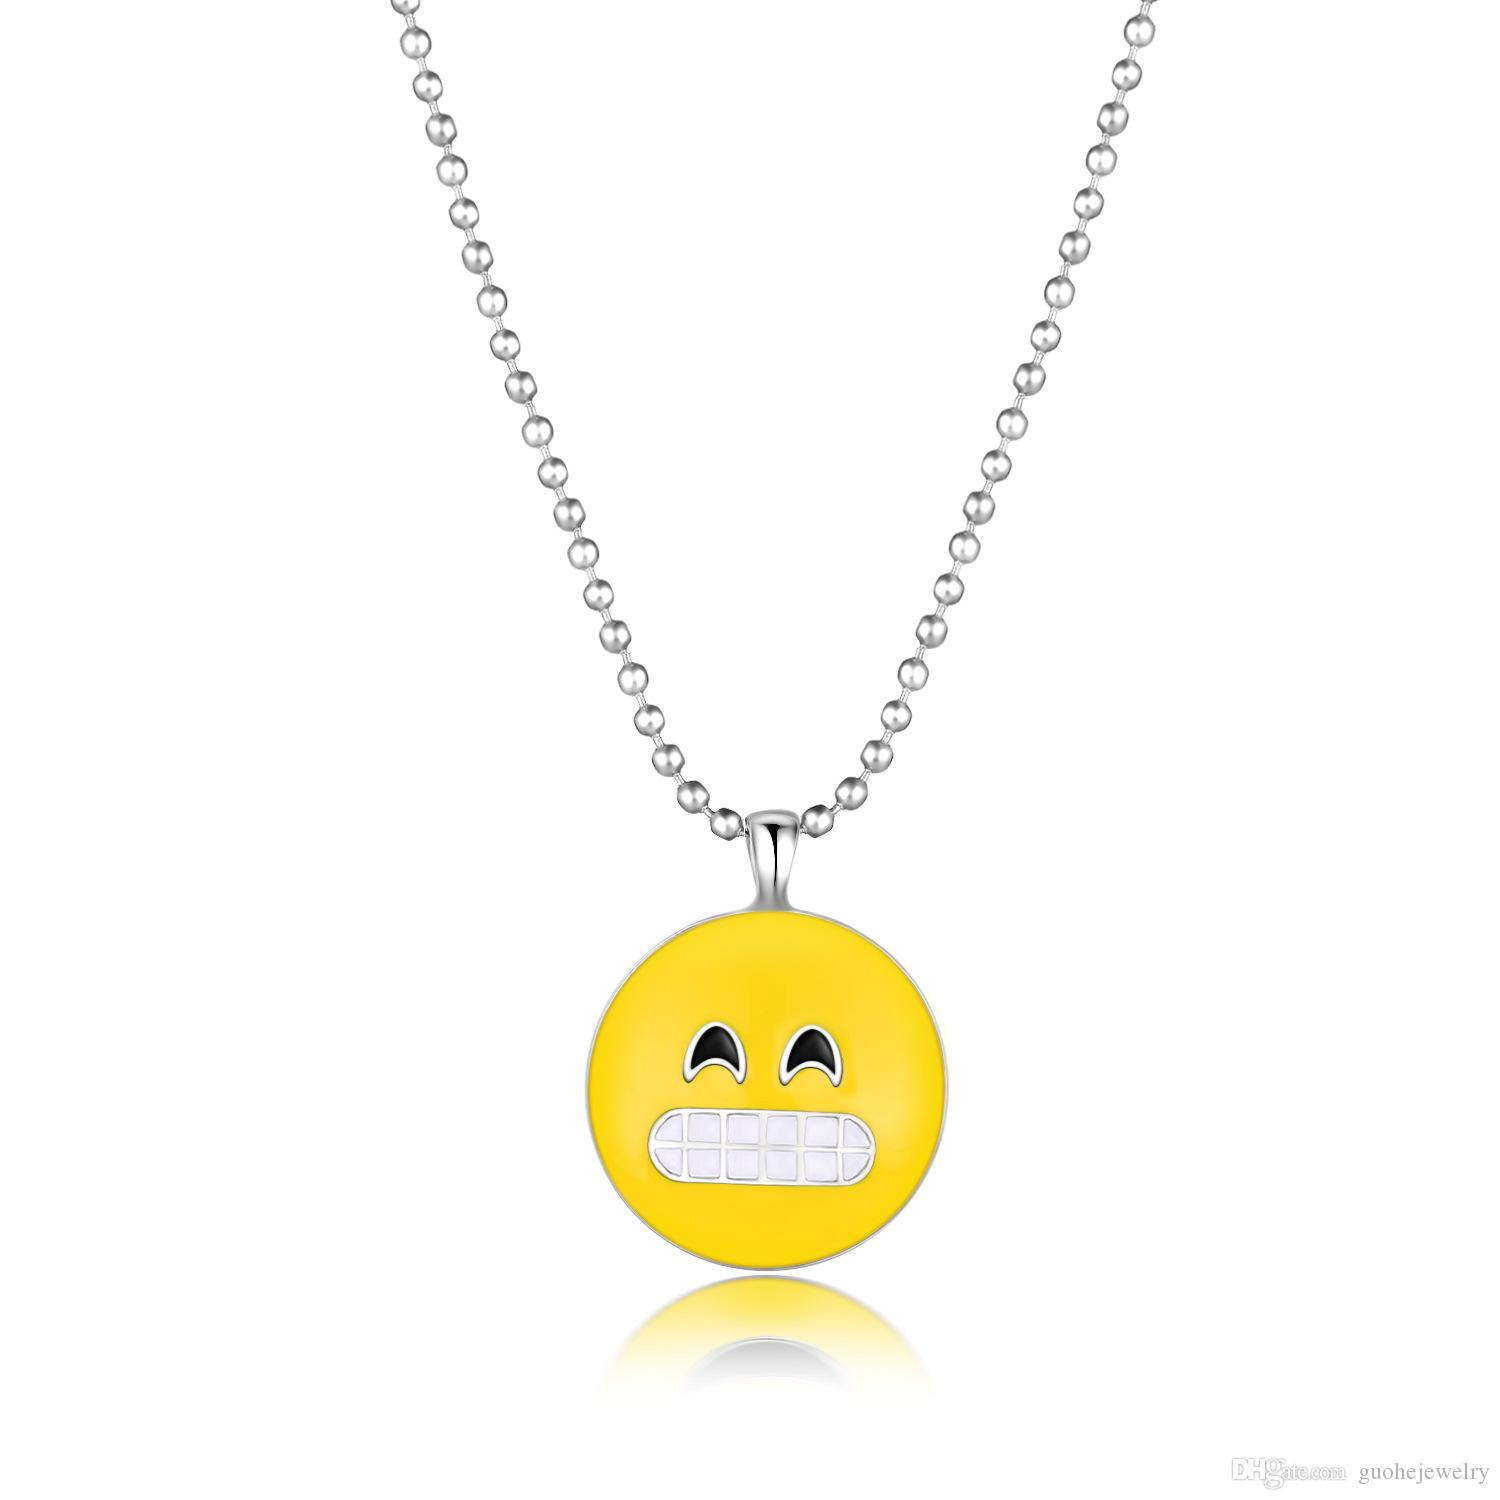 Wholesale good quality silver pendant necklace creative expression wholesale good quality silver pendant necklace creative expression emoji necklace christmas cute smiley face necklace ruby pendant necklace star pendant aloadofball